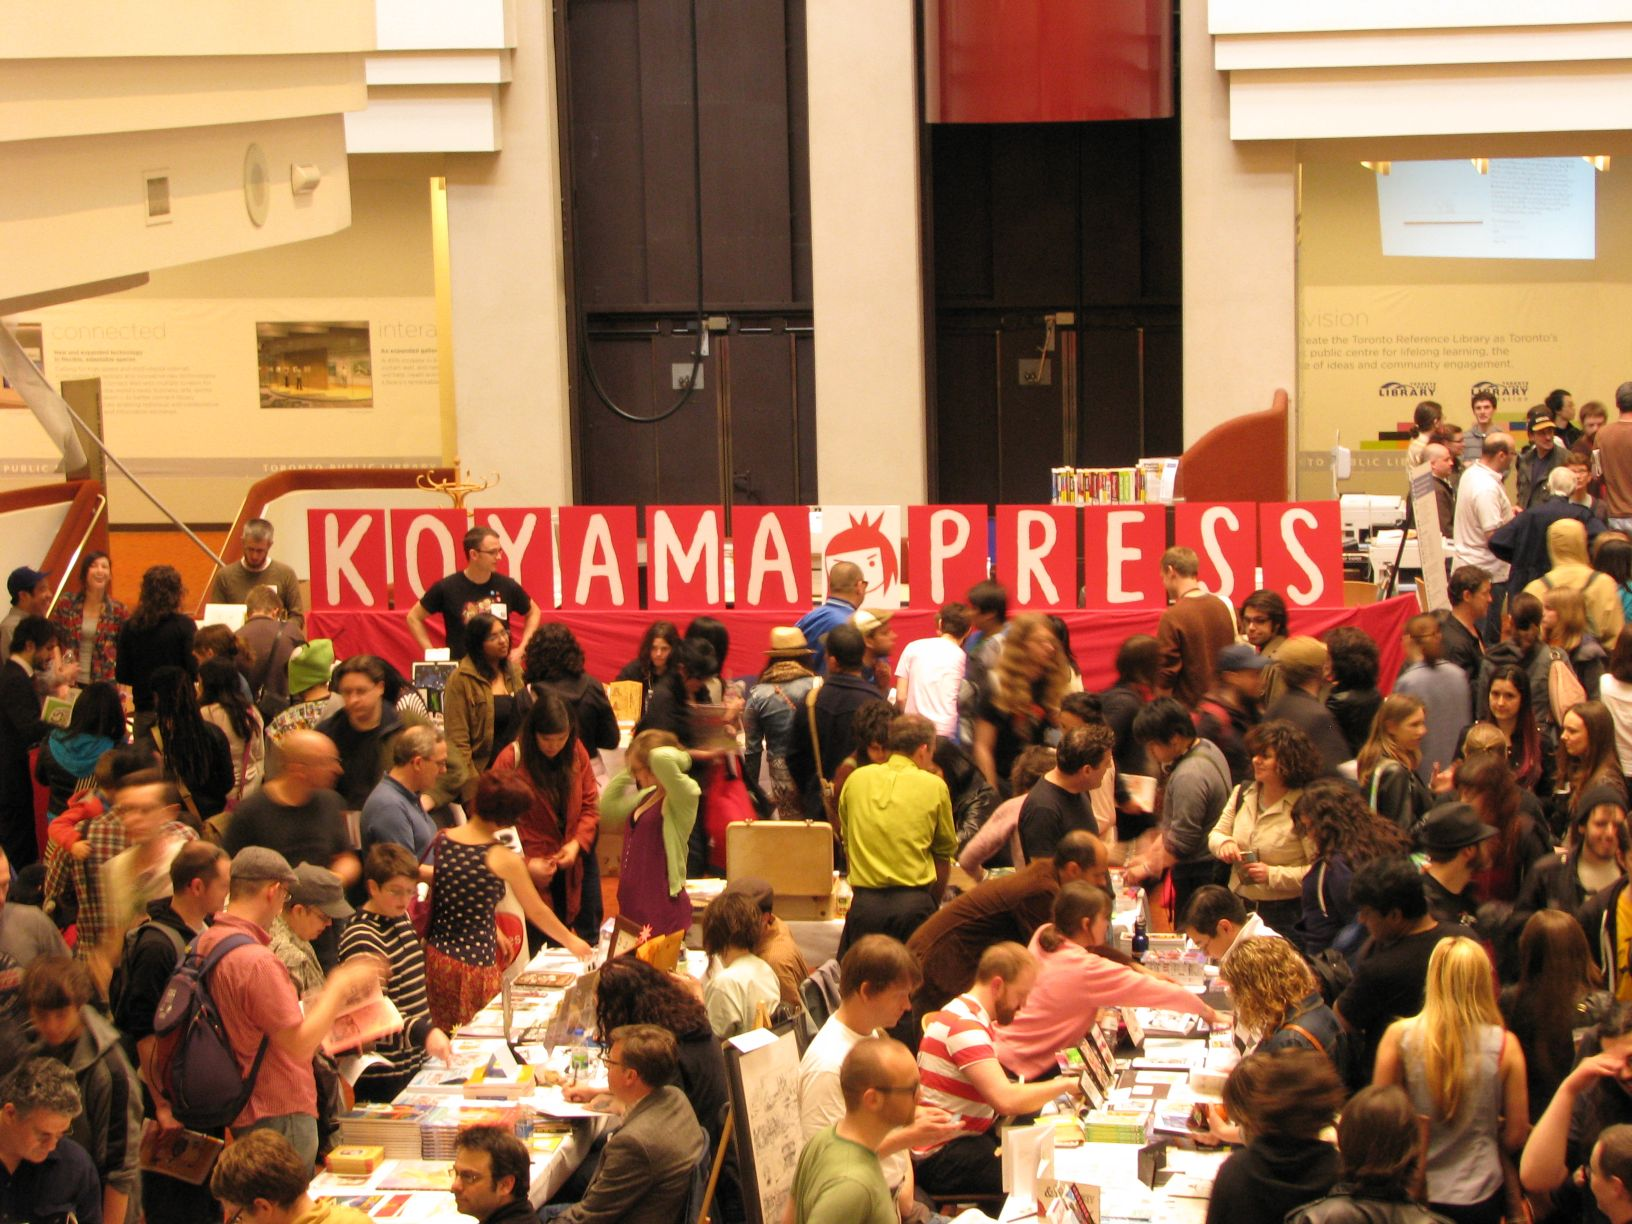 Photo of a crowd in front of a sign that says Koyama Press